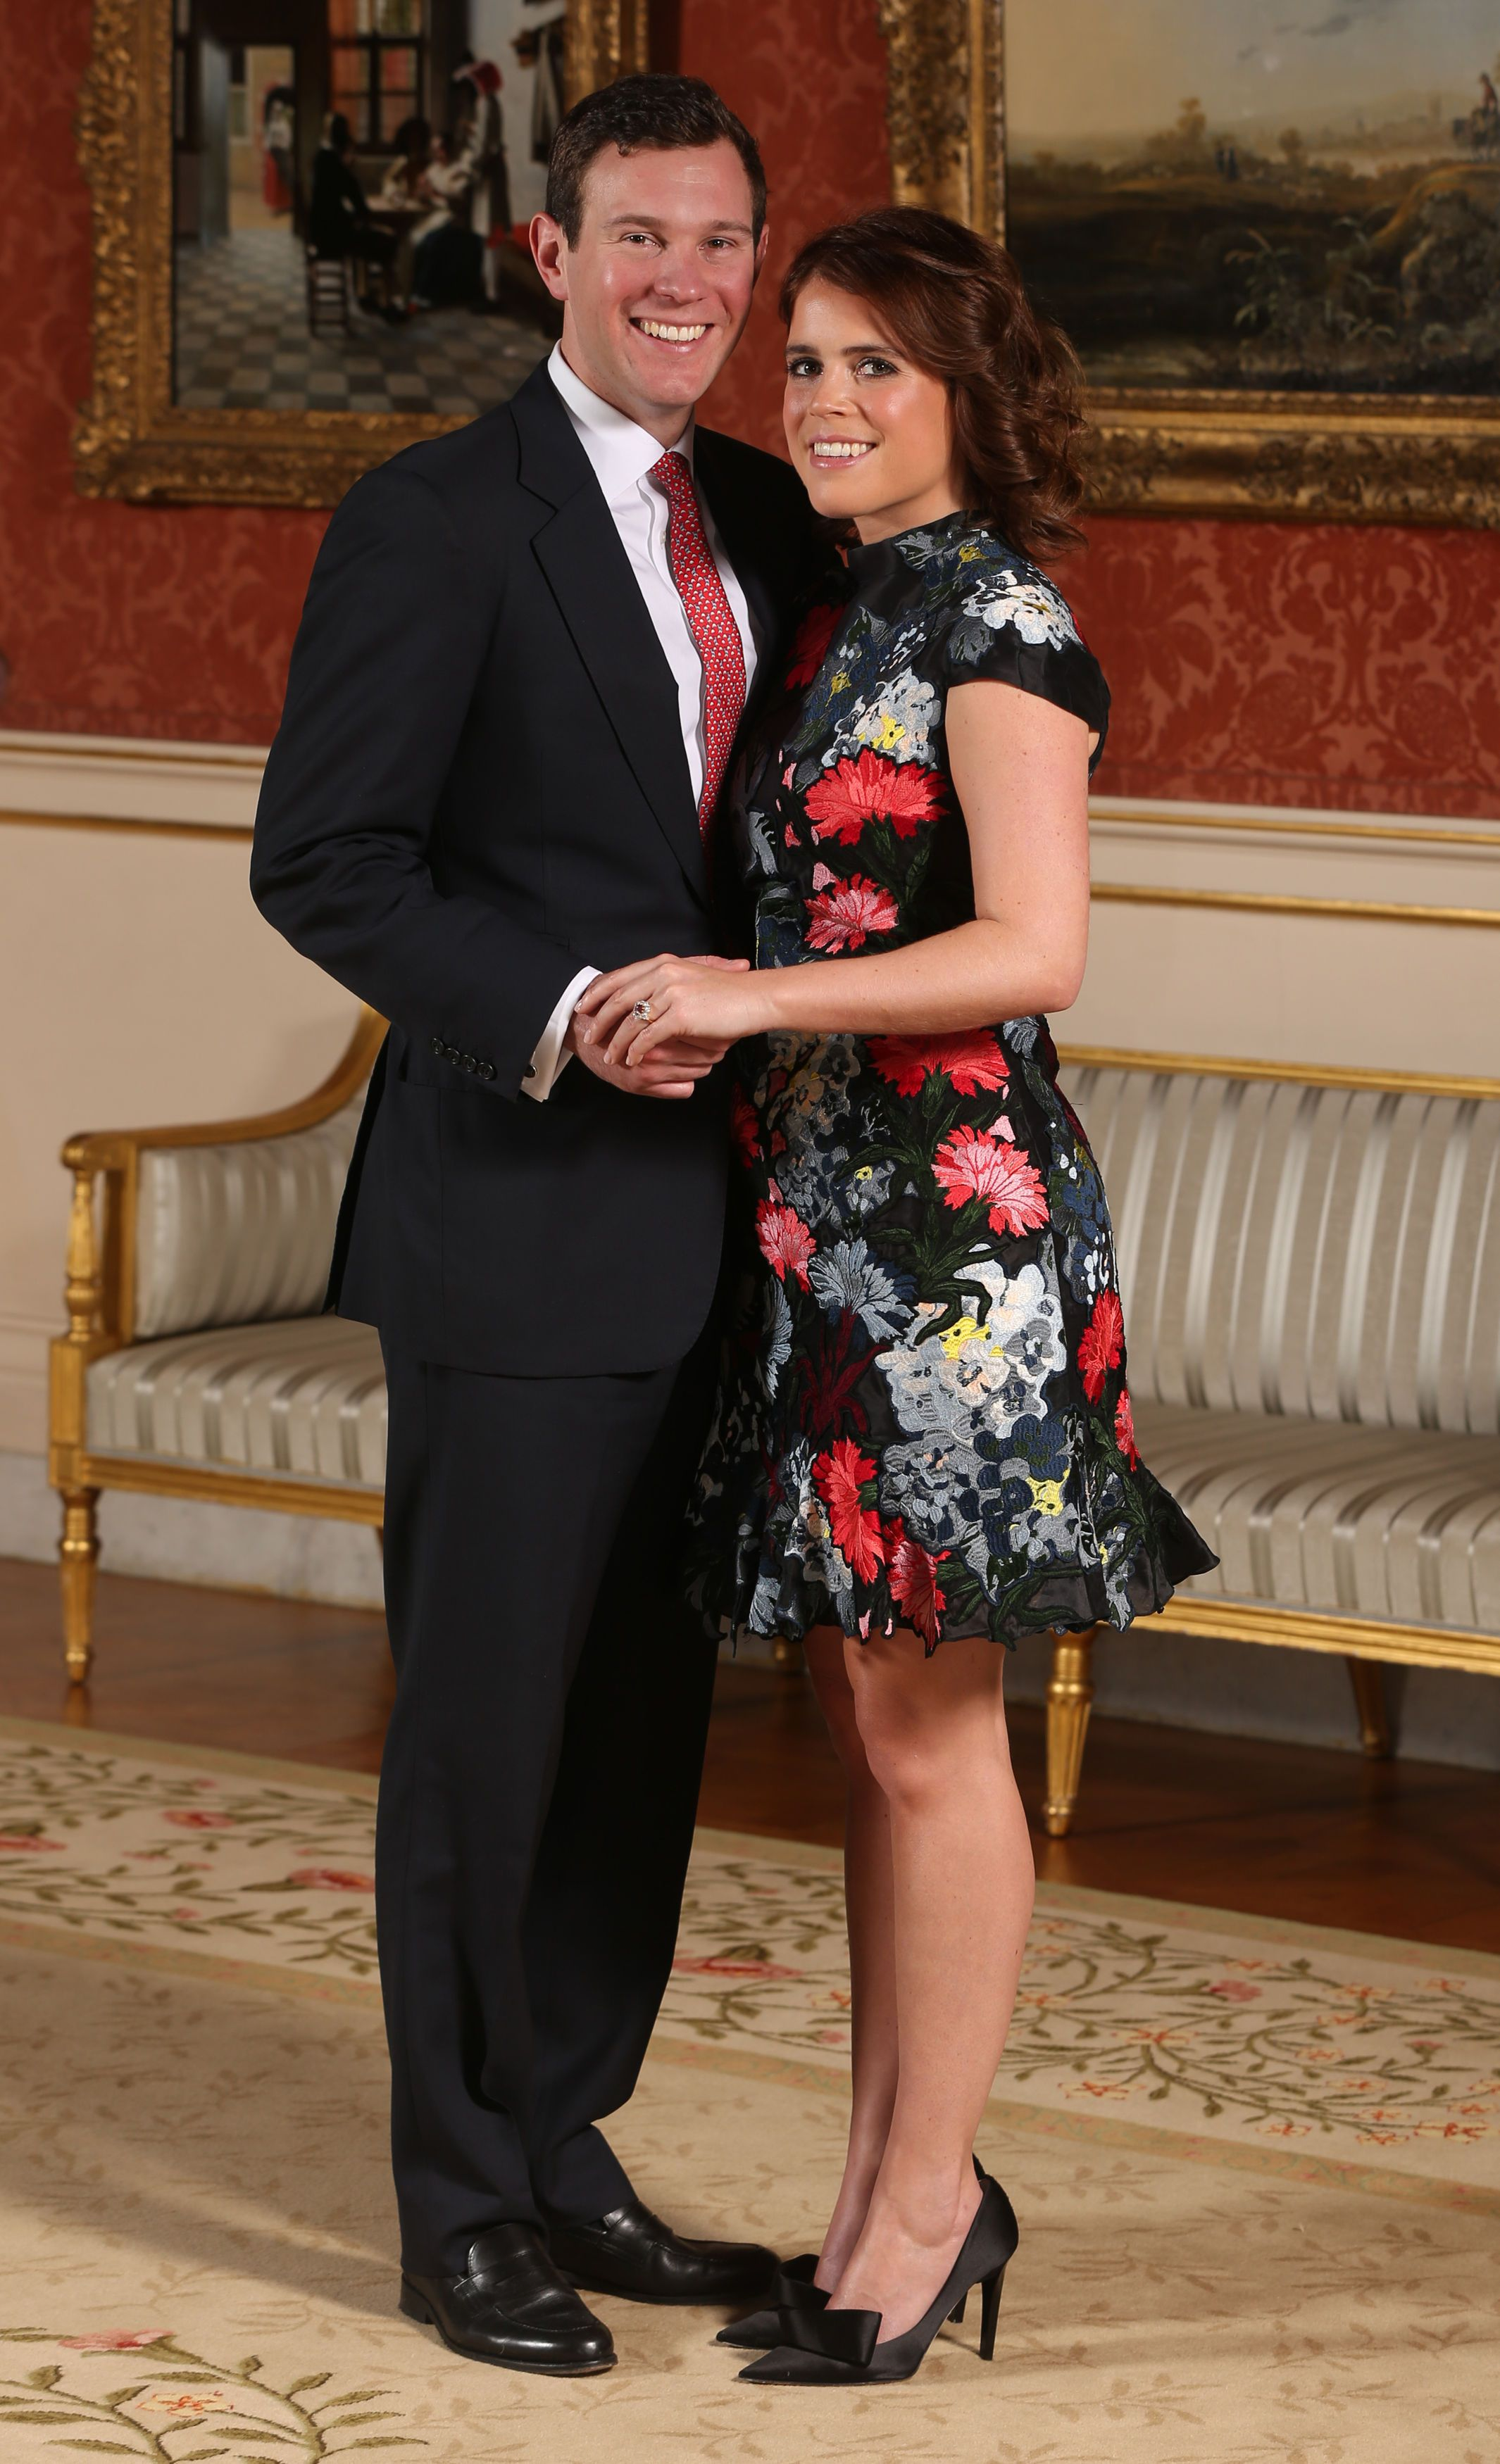 TLC Will Broadcast Princess Eugenie's Wedding in the United States